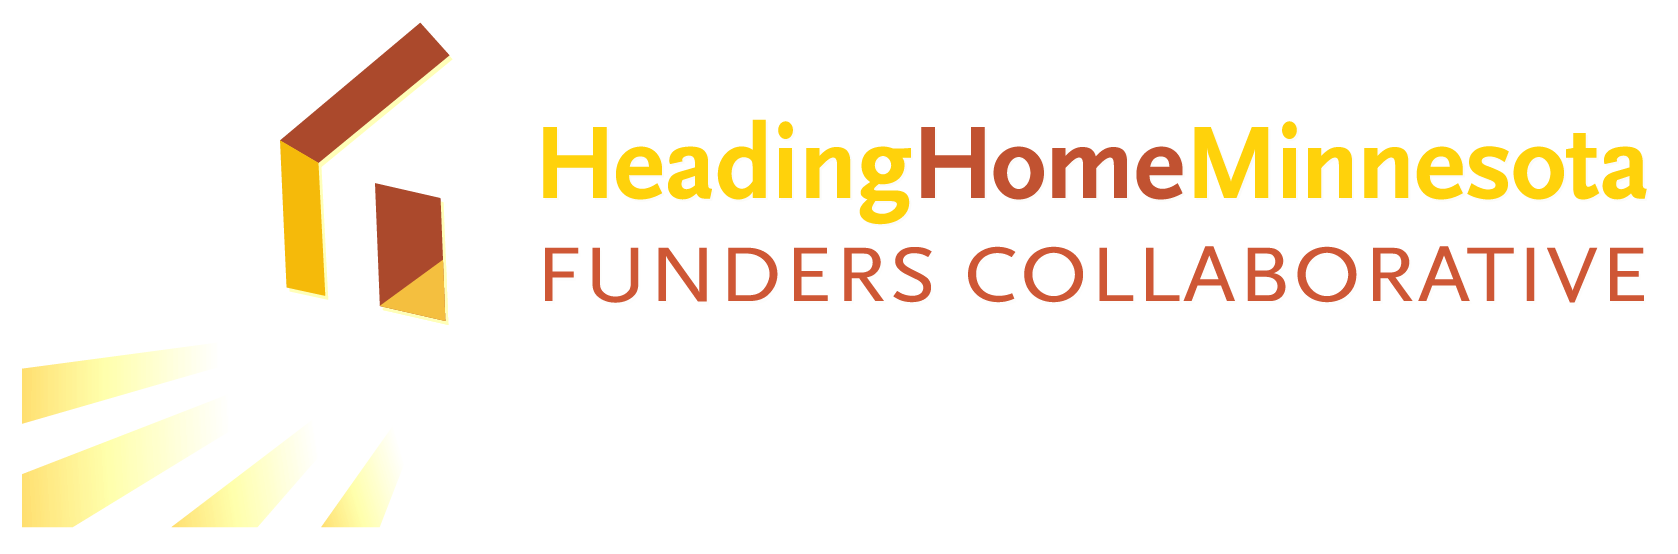 Heading Home MN Funders logo | www.headinghomemnfunders.org